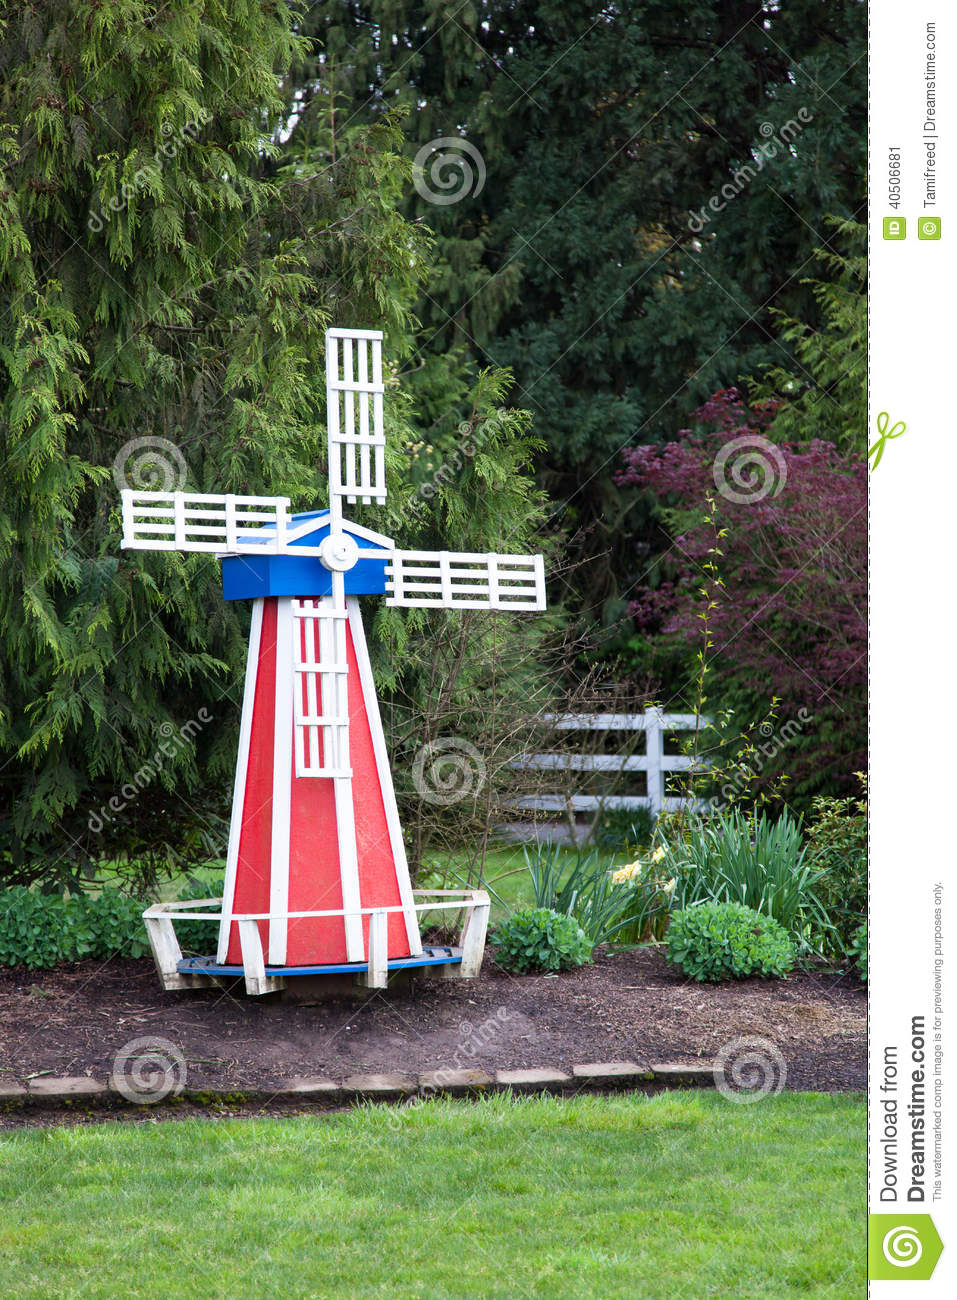 D coration de jardin de moulin vent photo stock image for Moulin en bois pour jardin